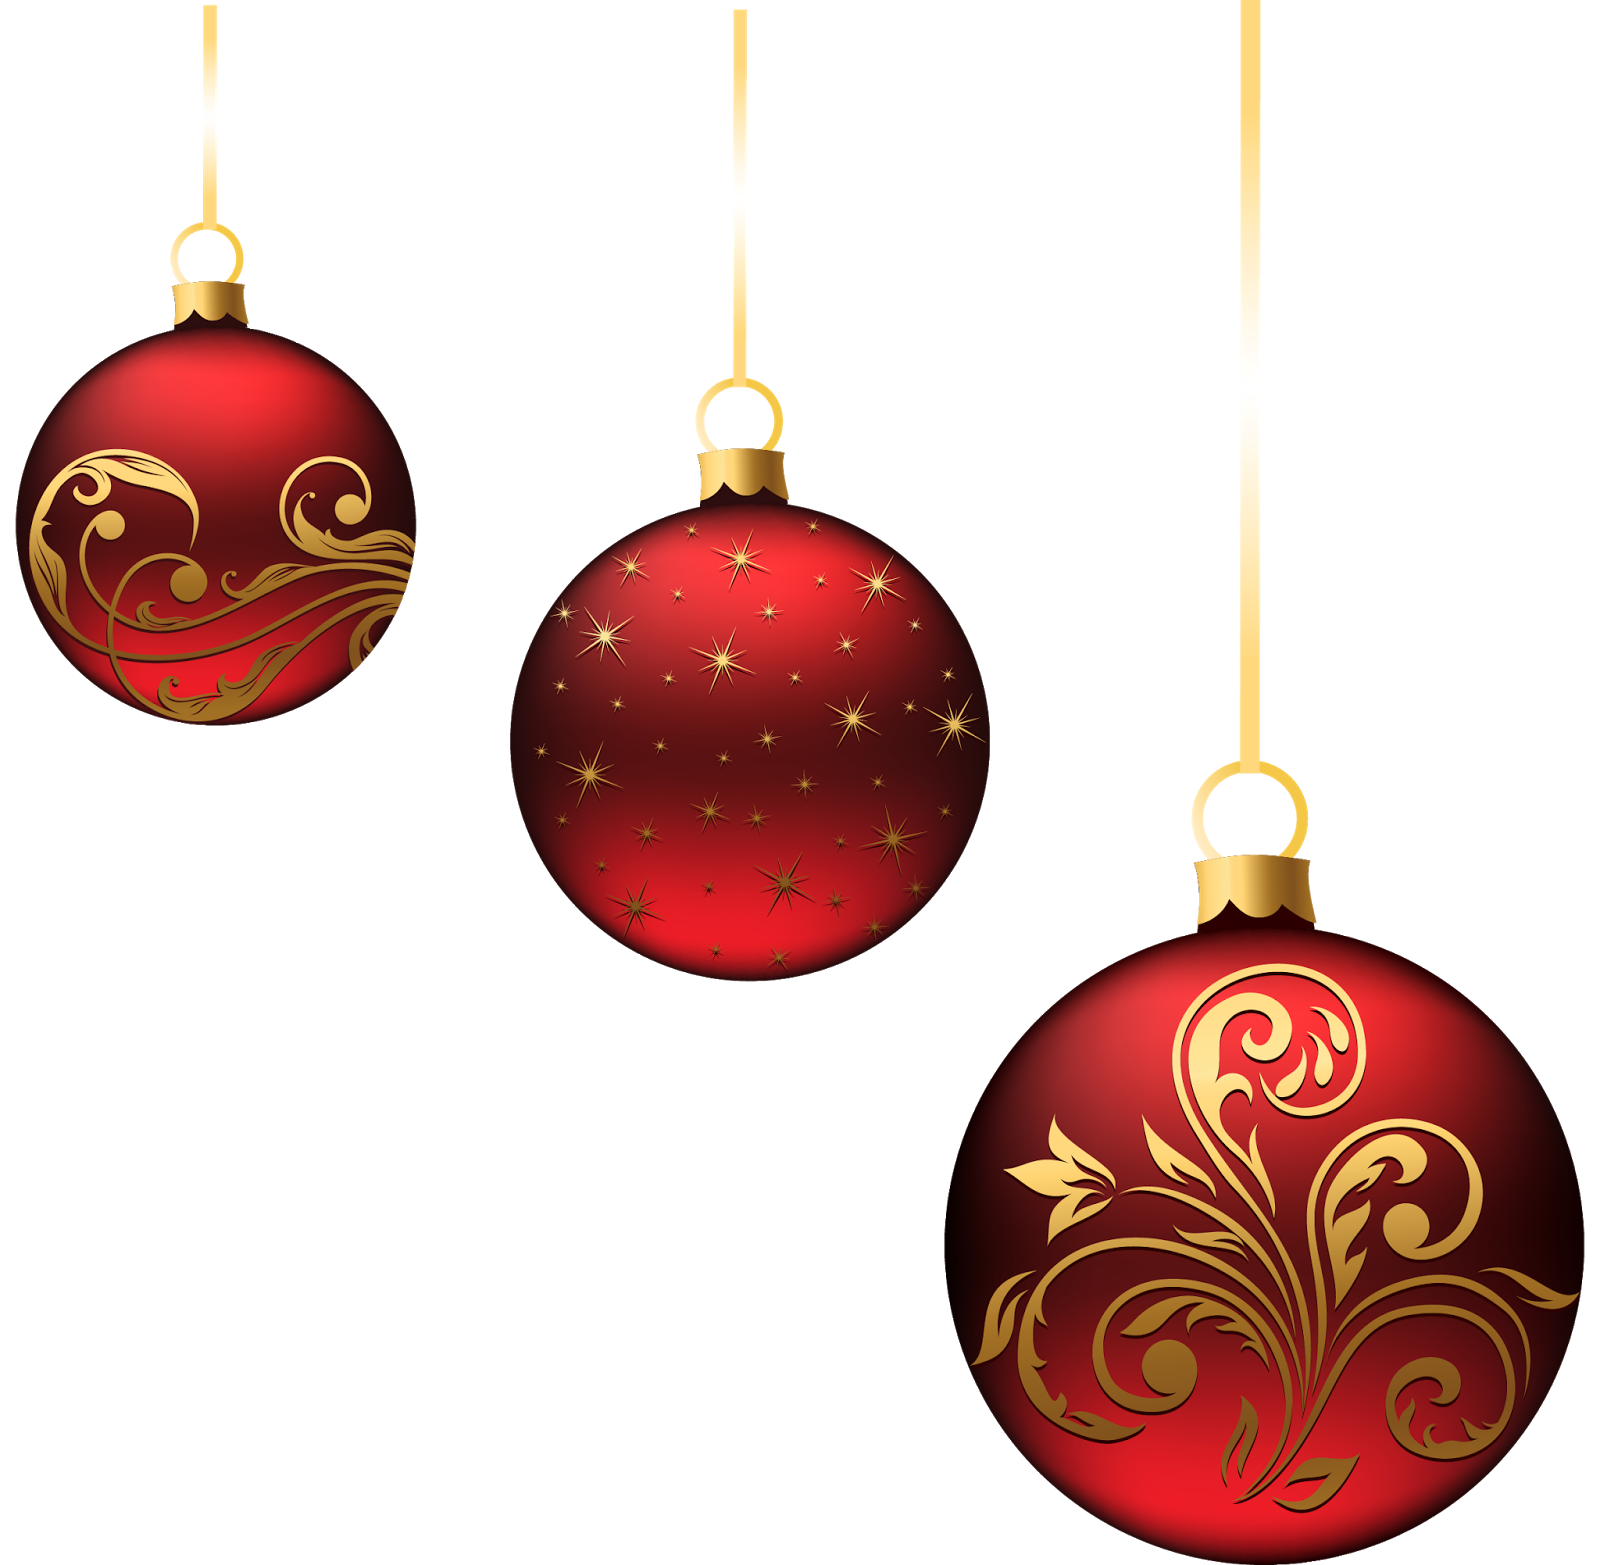 christmas ornaments transparent background free christmas ornaments transparent background png transparent images 45757 pngio christmas ornaments transparent